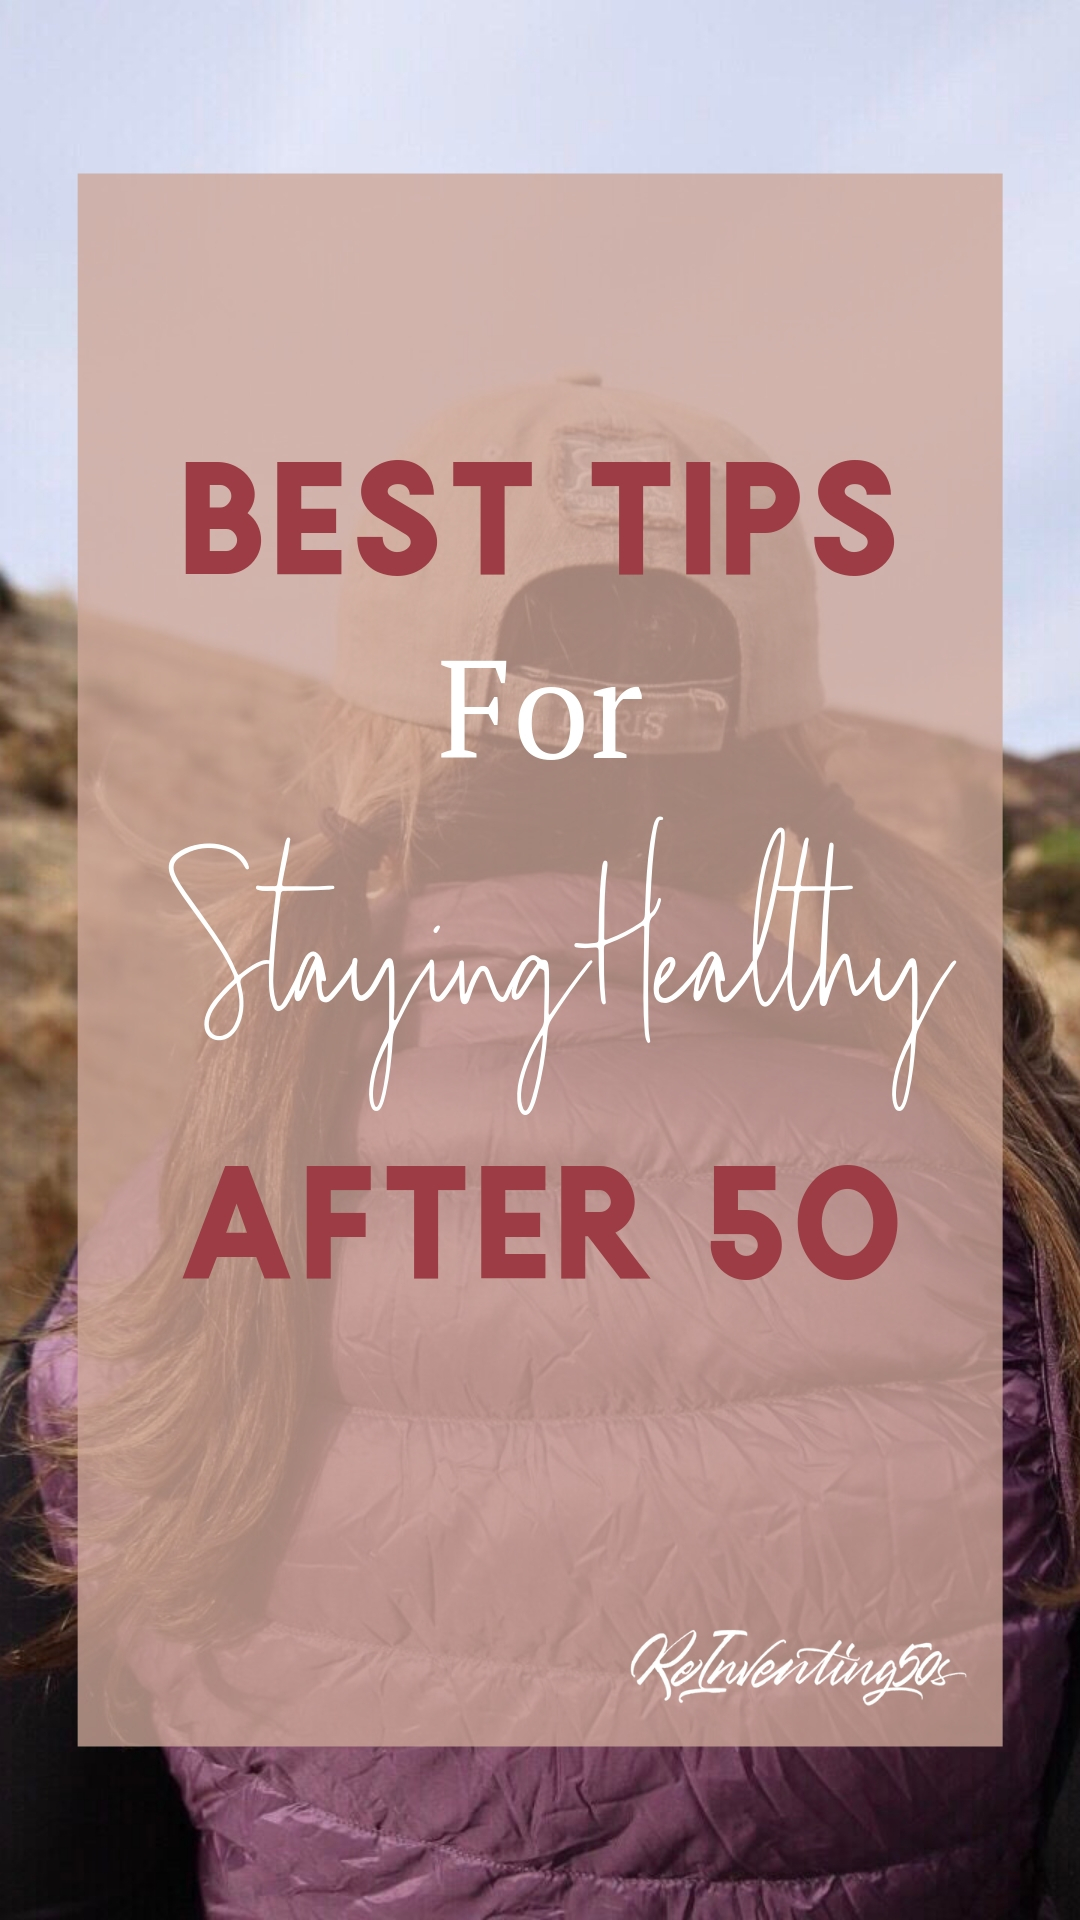 Learn how to stay healthy with these 5 simple tips over on the blog.